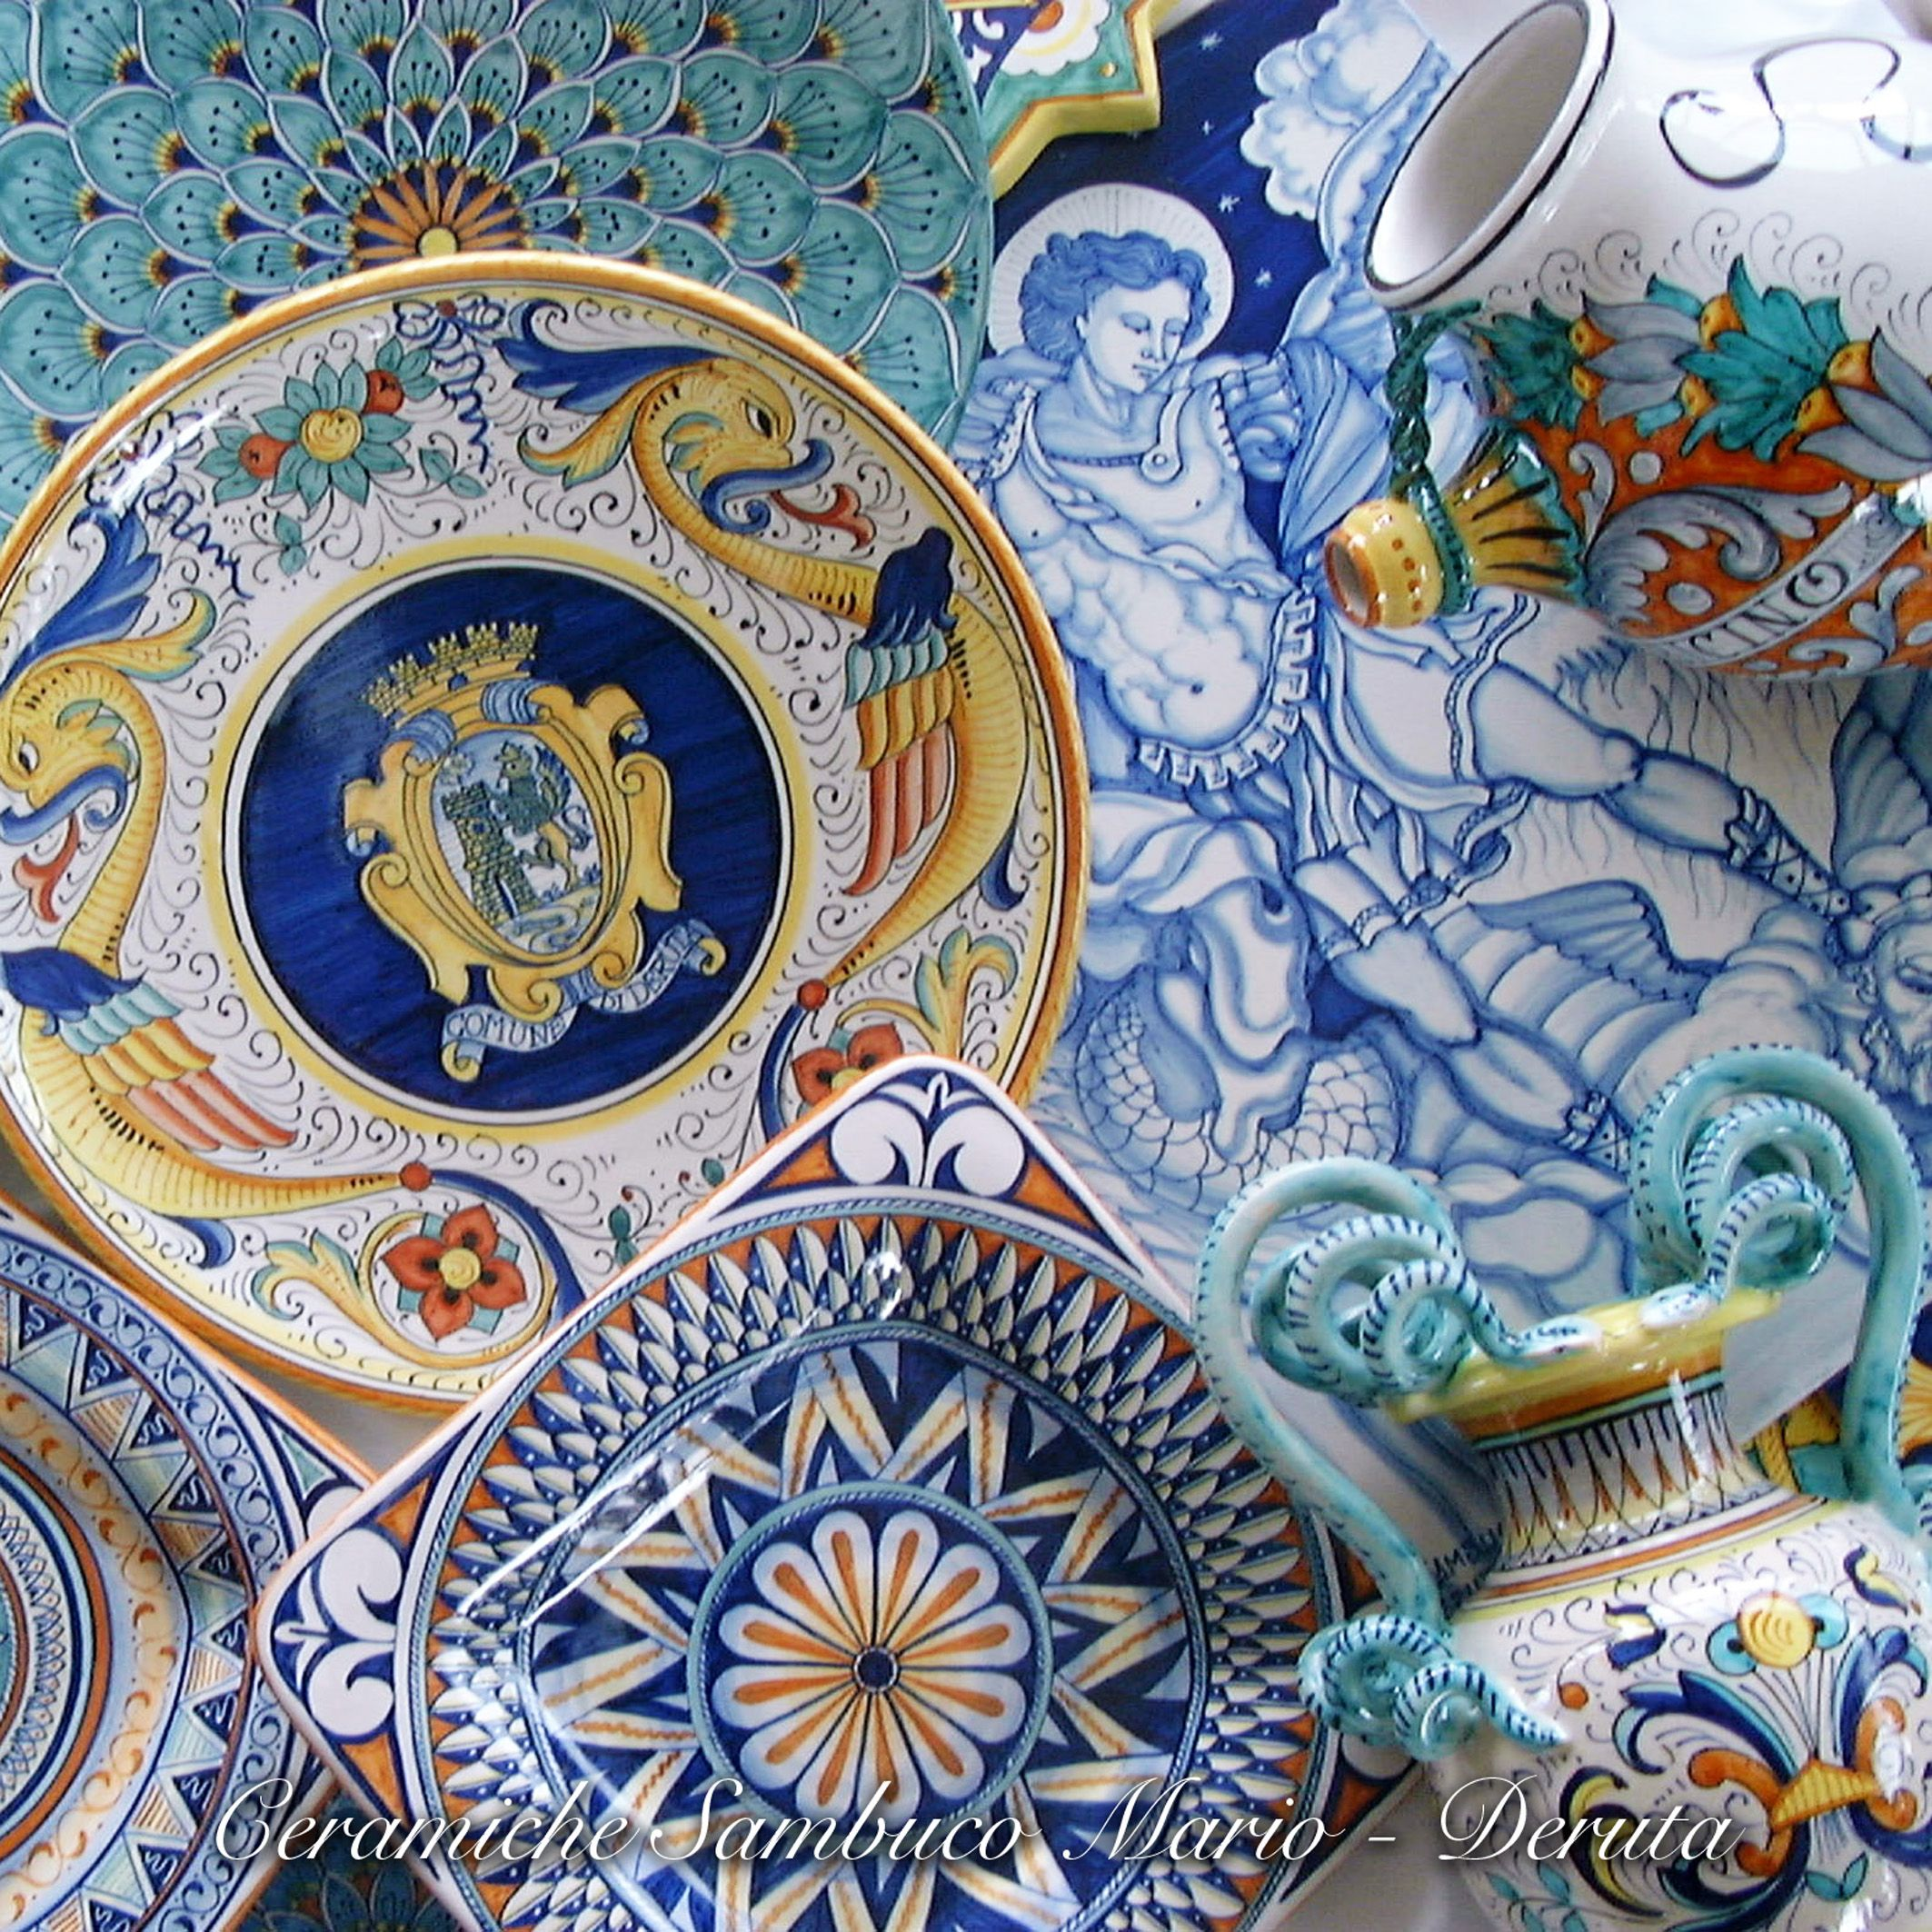 Fatto A Mano Hand Made Authentic And Original Italian Deruta Pottery